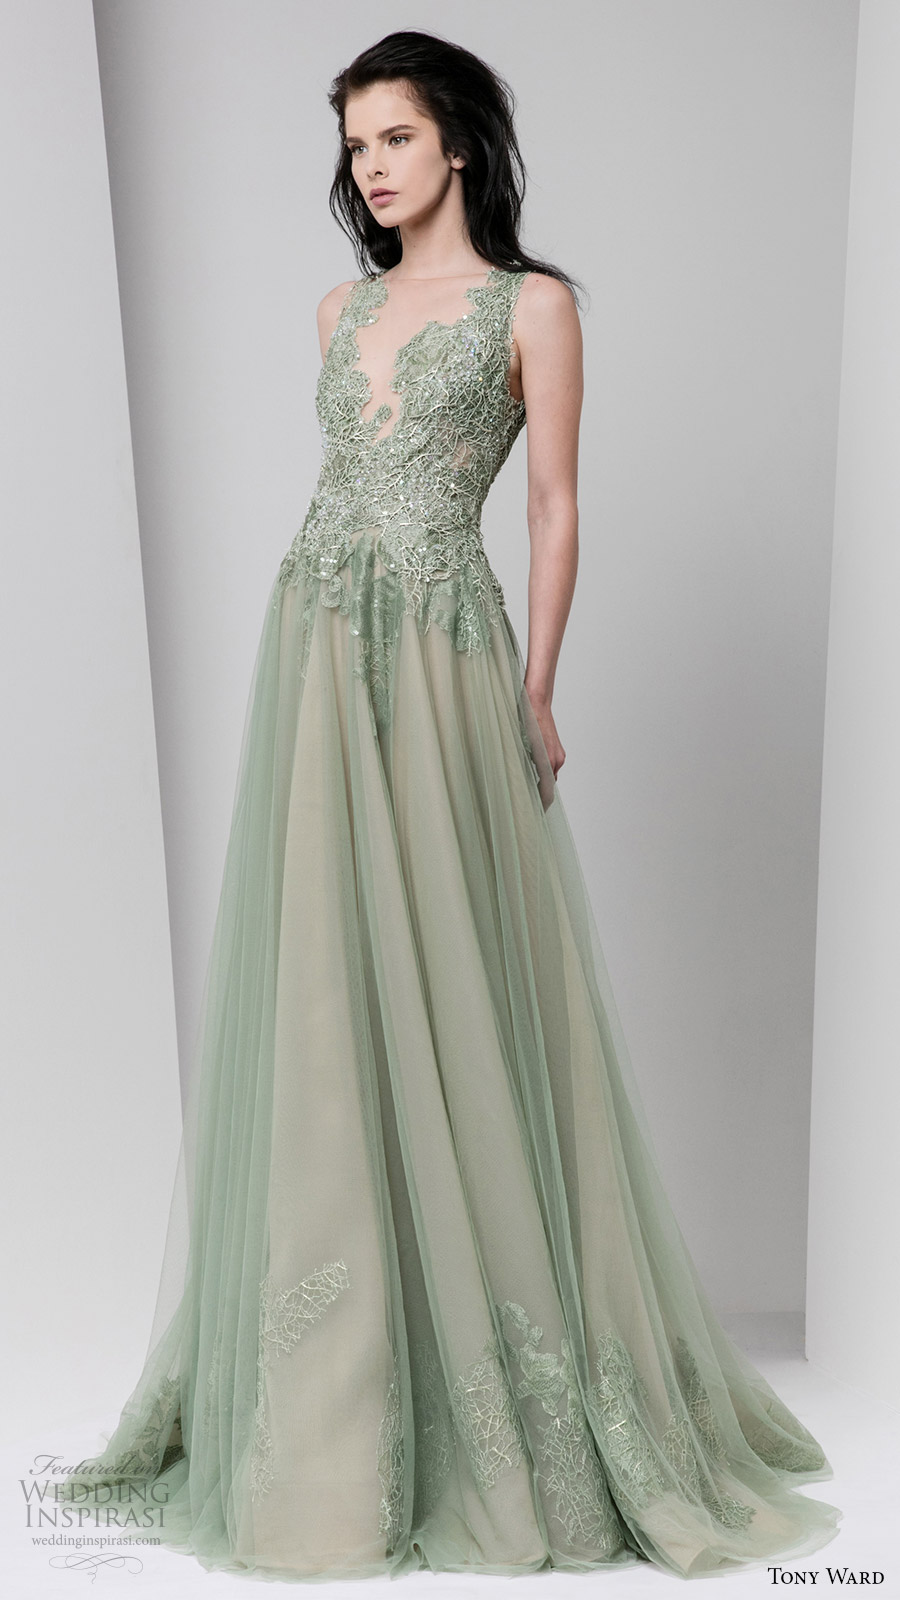 Tony ward fall 2016 ready to wear dresses wedding inspirasi for Dresses for afternoon wedding